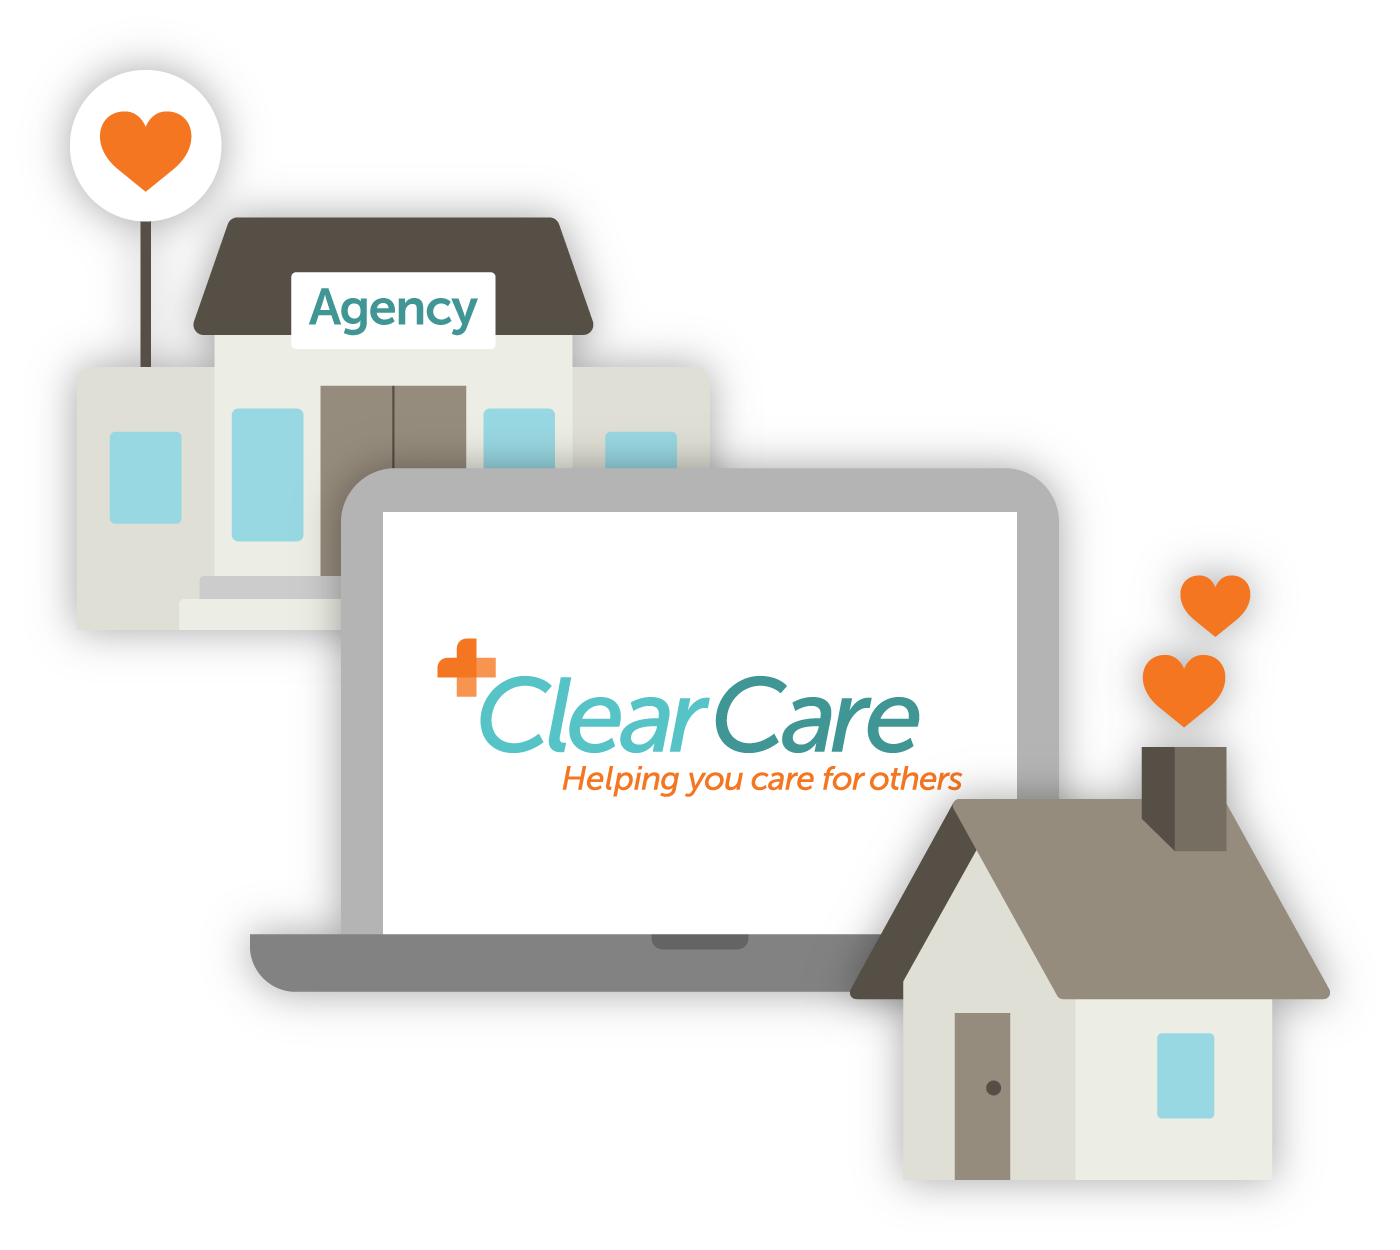 ClearCare